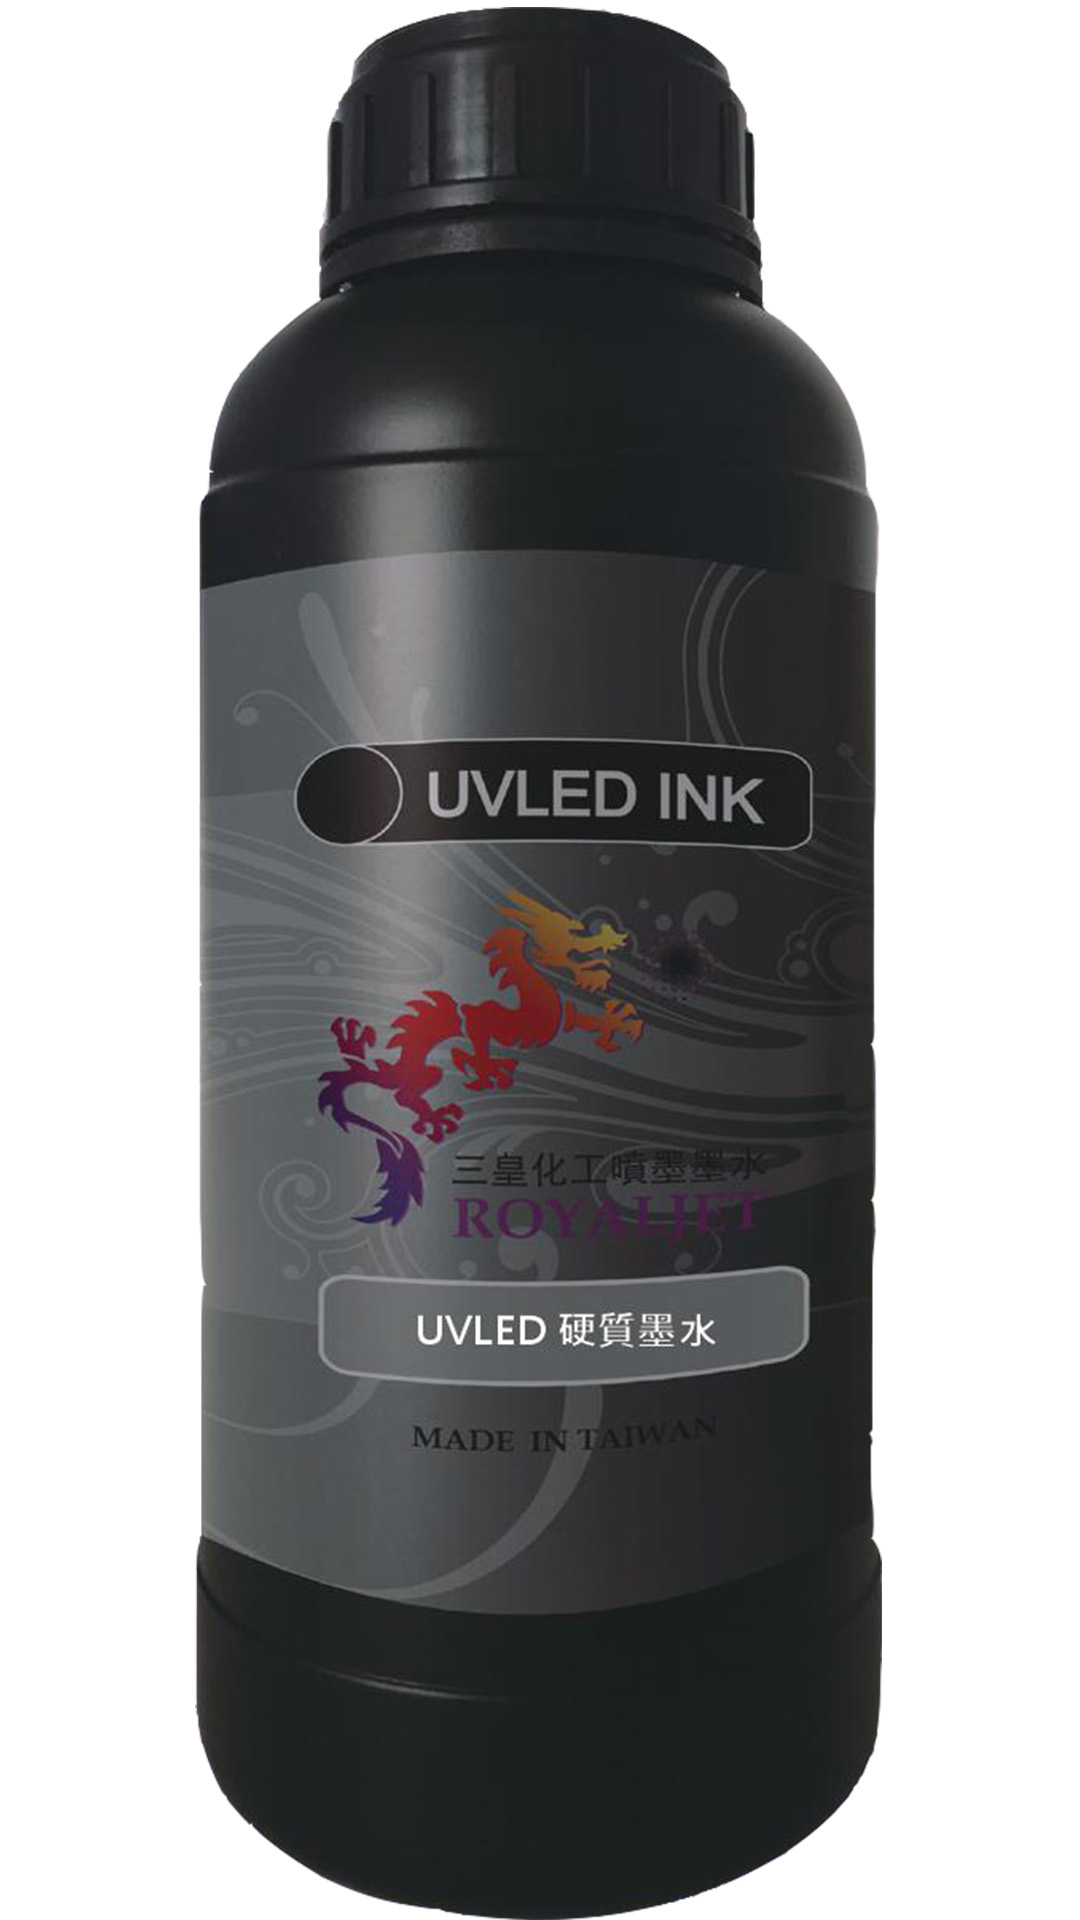 UV Rigid Inkjet ink